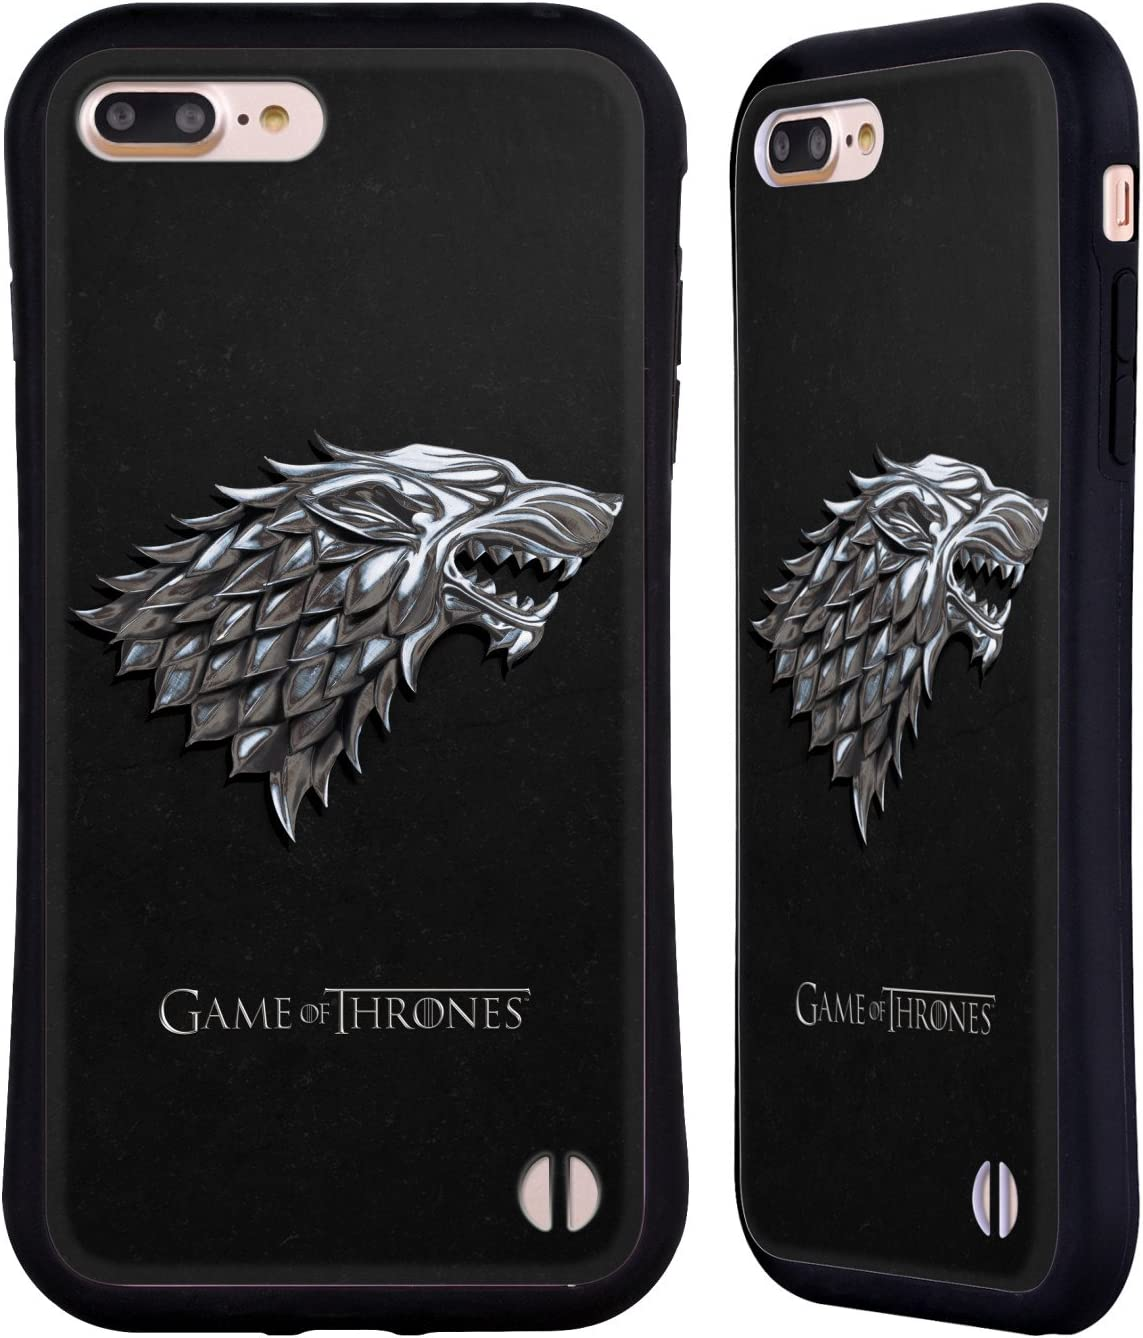 Get Iphone 8 Game Of Thrones Case Gif